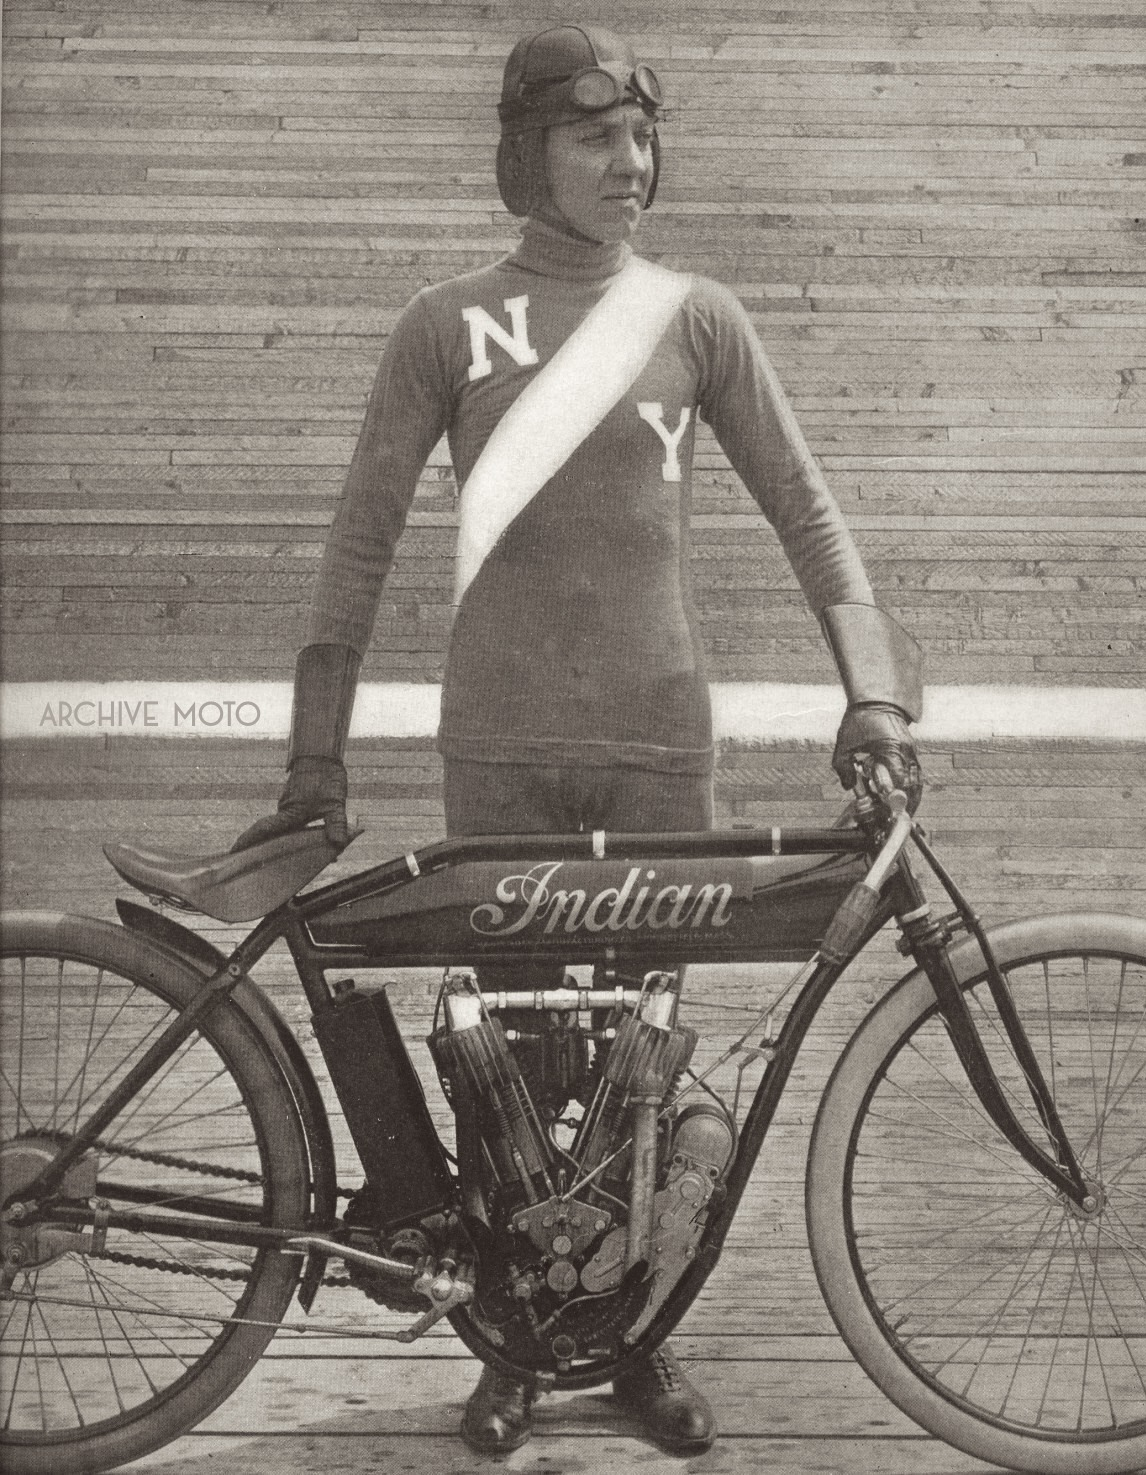 This image of A.G. Chapple comes from his glory days spent at full tilt on the boards of America's motordromes. It was taken after the New York icon turned a mile in 38 seconds, a staggering 95 mph at his home track of Brighton Beach in September, 1912.